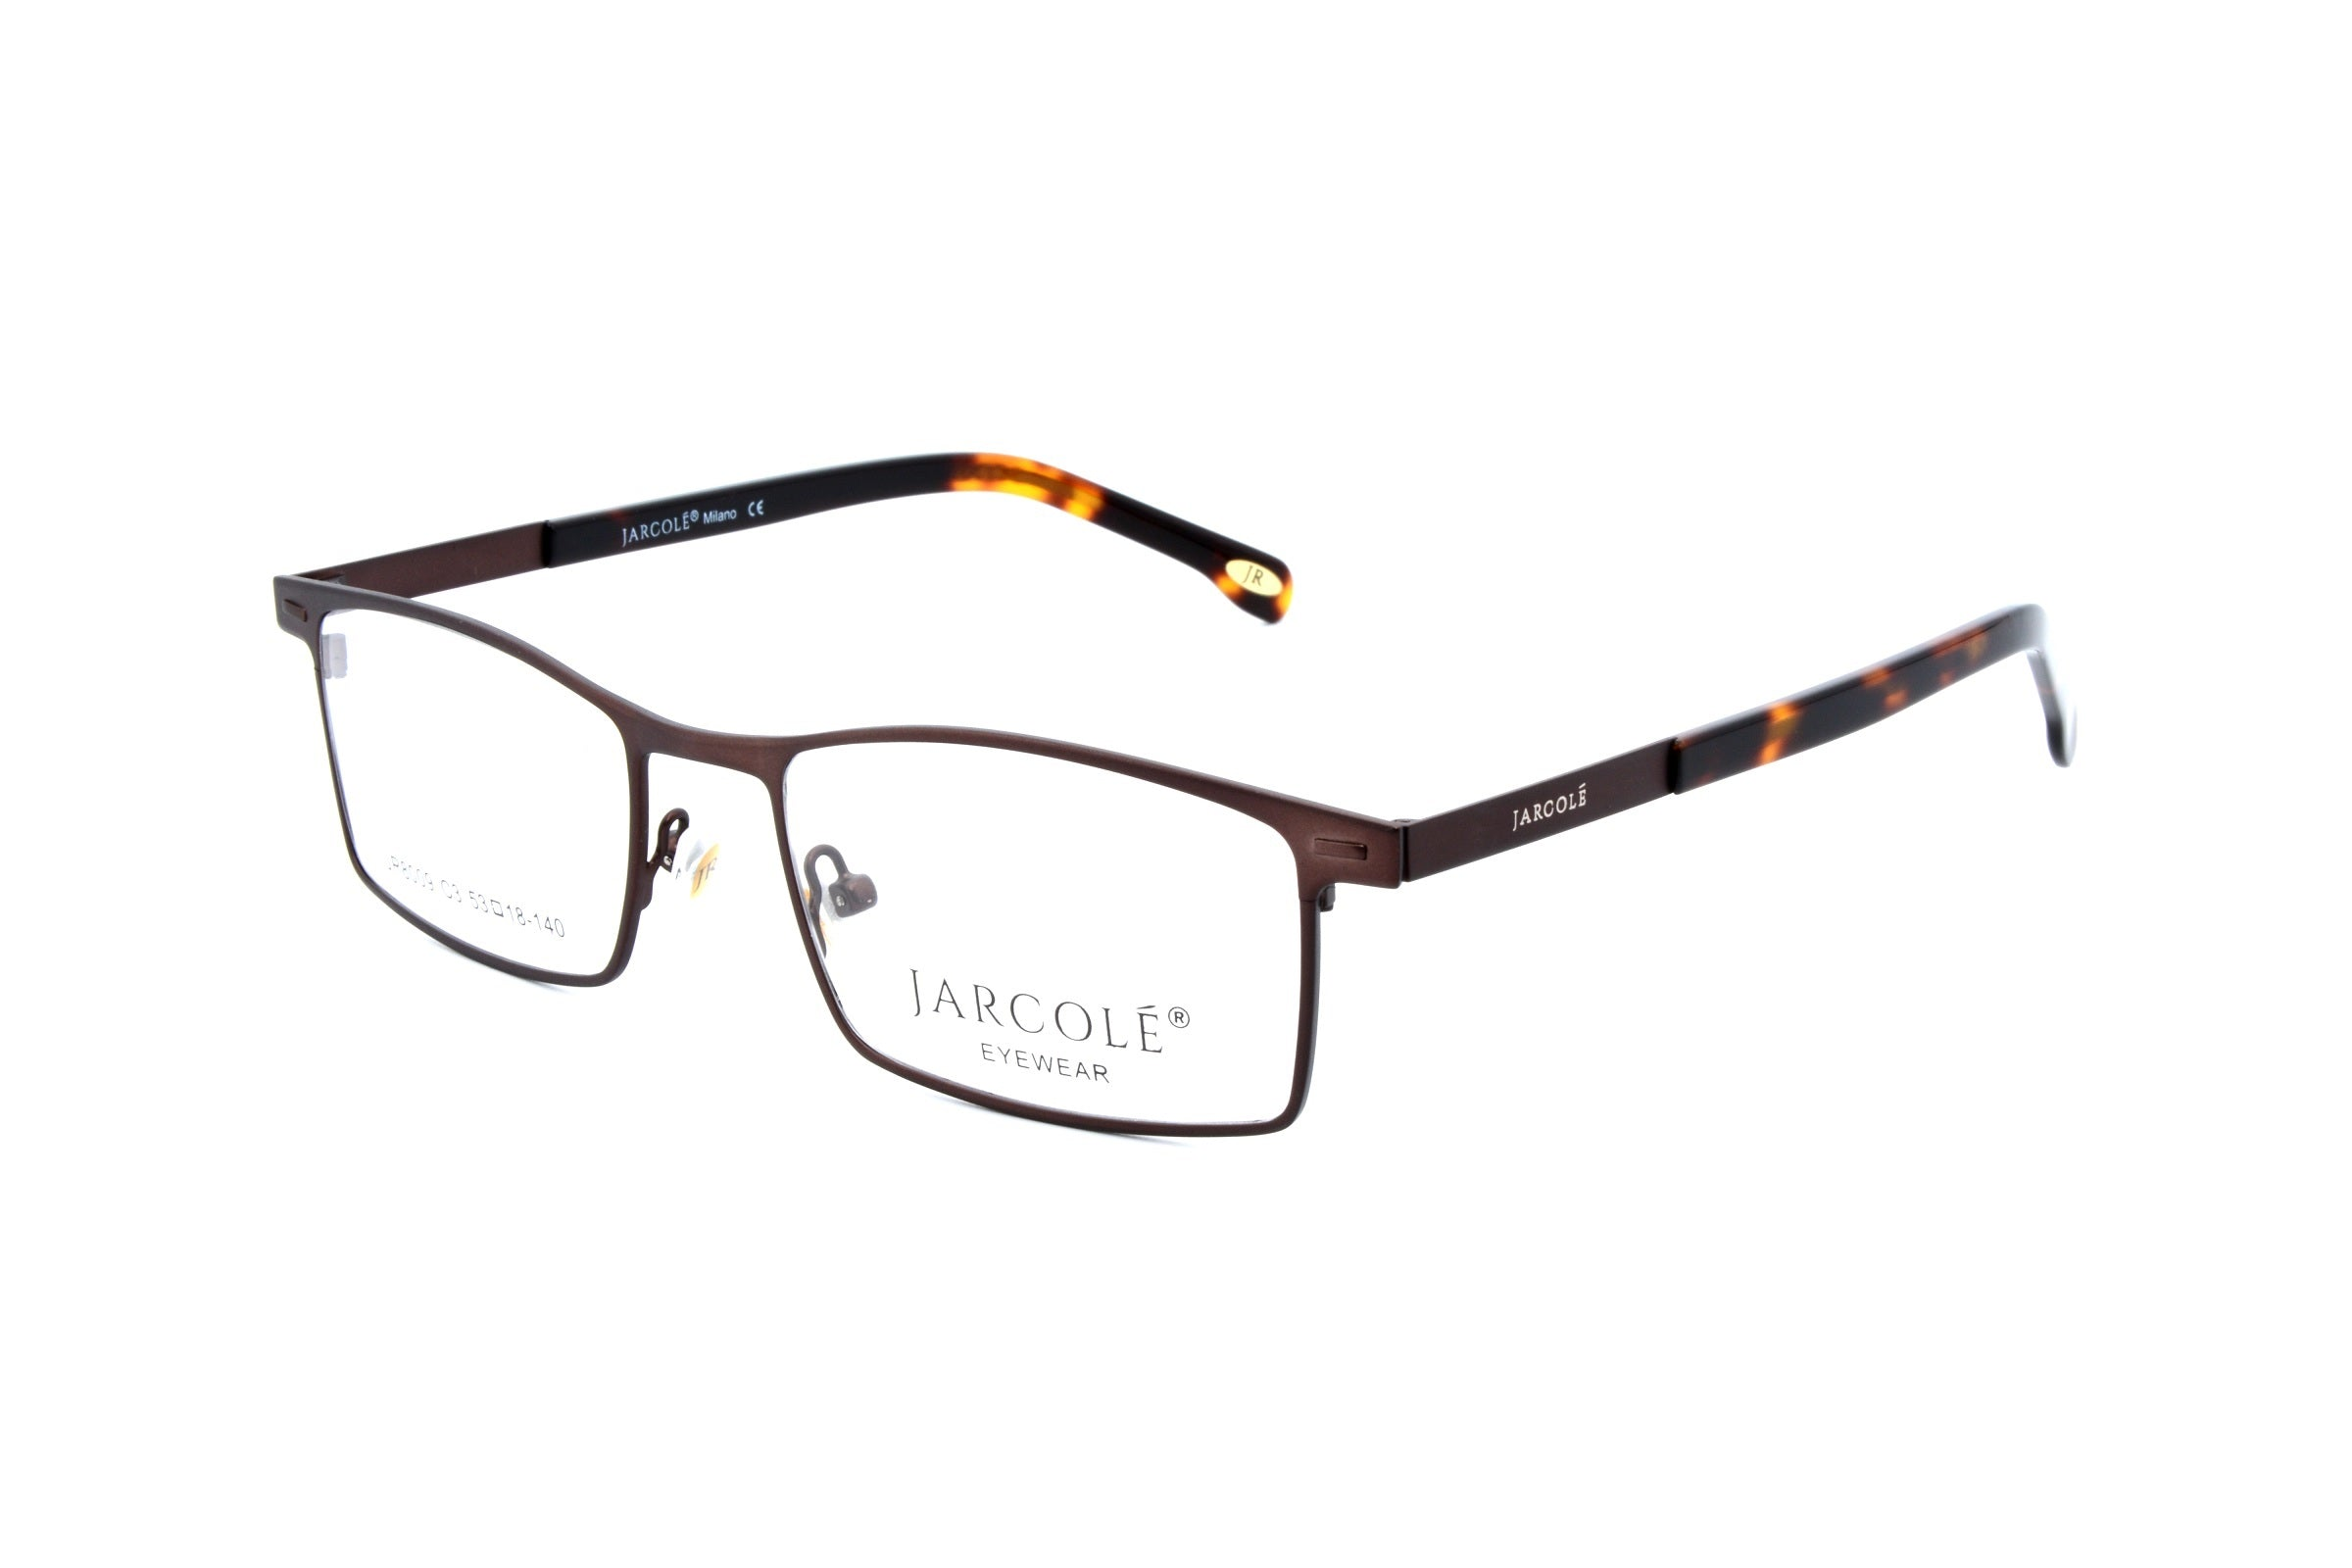 Jarcole eyewear 8009, C3 - Optics Trading